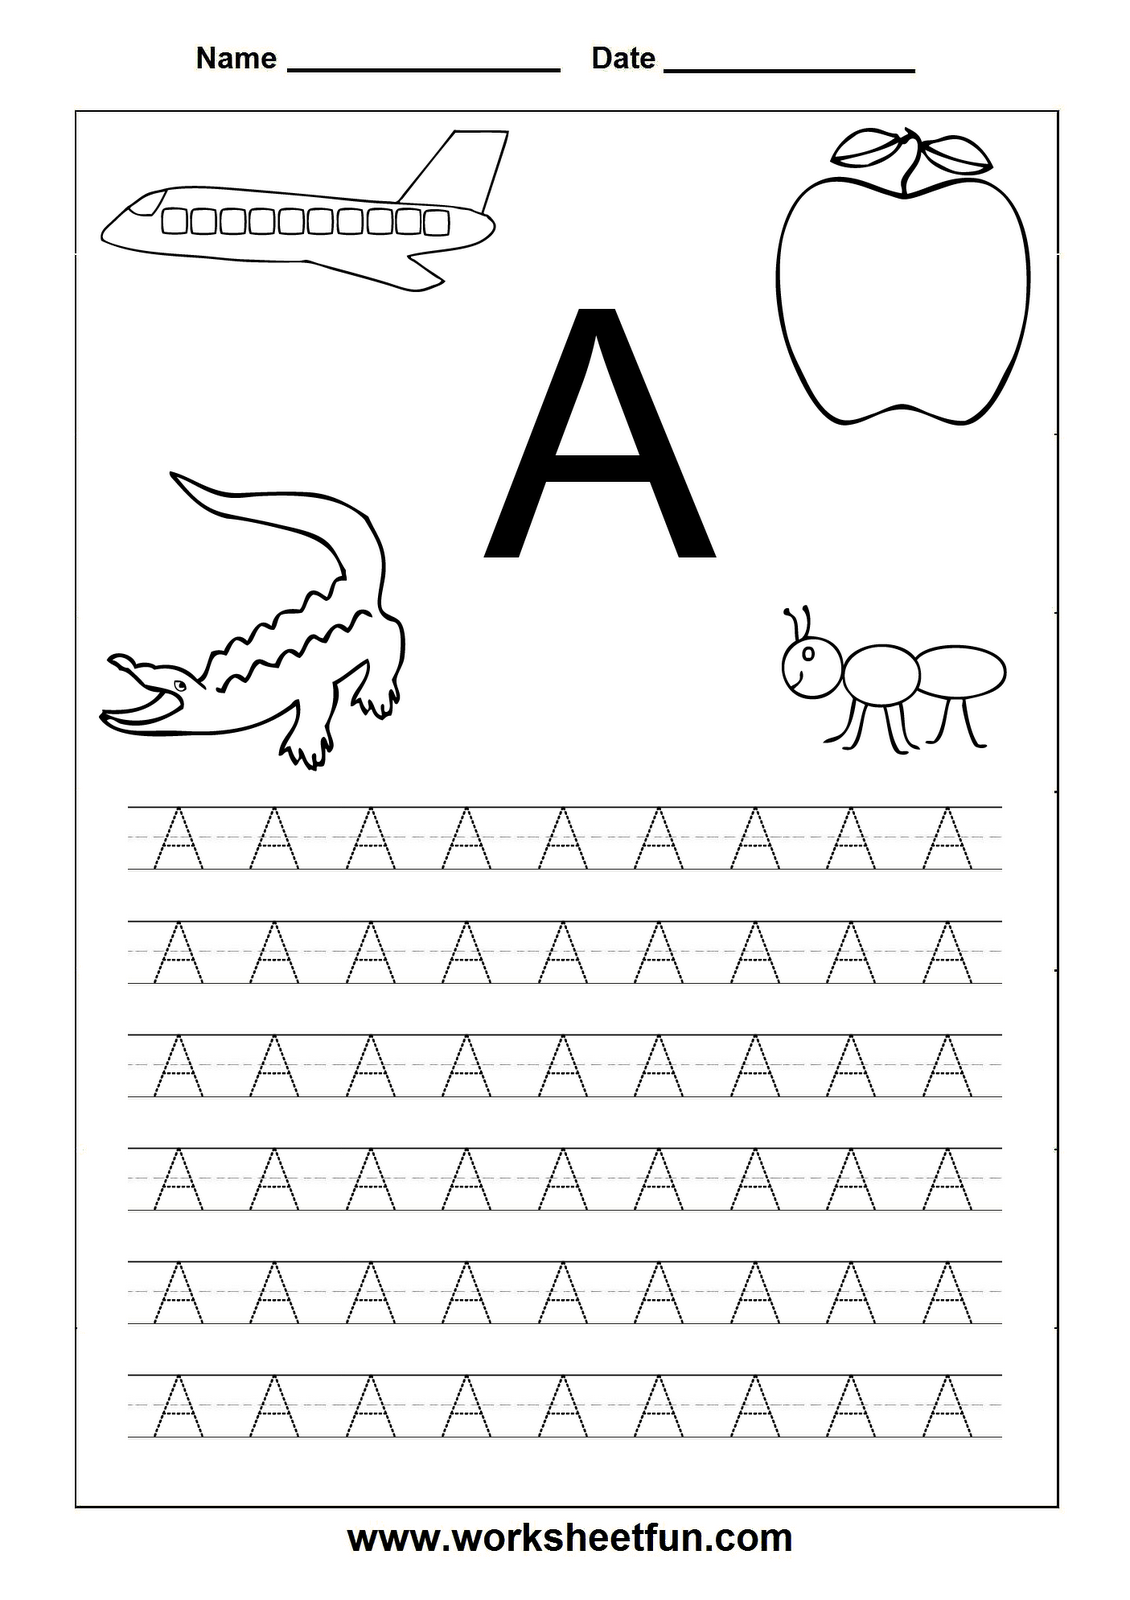 worksheet Letter A Worksheets For Kindergarten letter worksheets for kindergarten printable letters pinterest printable